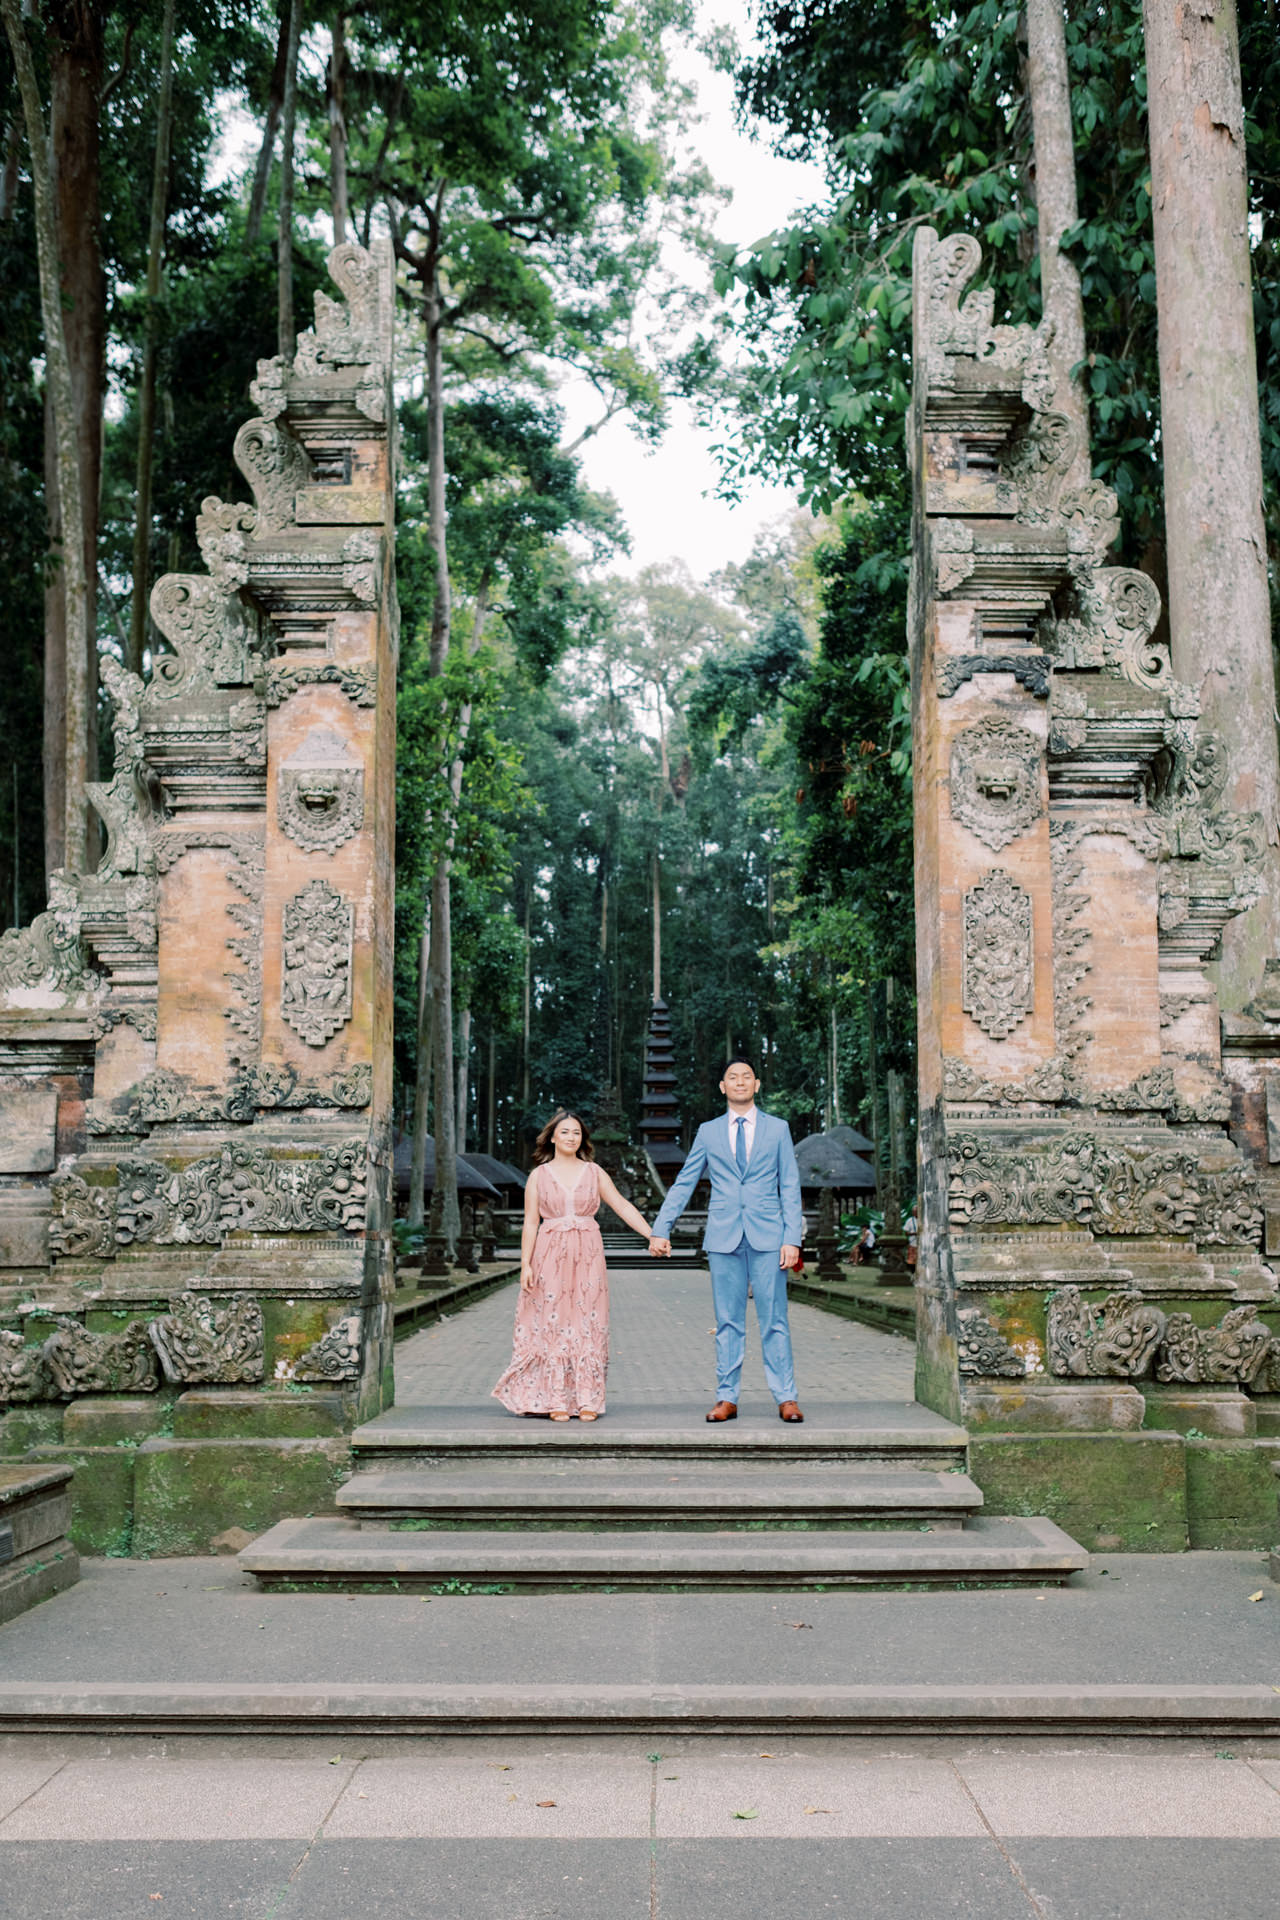 A&H: Bali Prewedding at Sangeh Monkey Forest 2